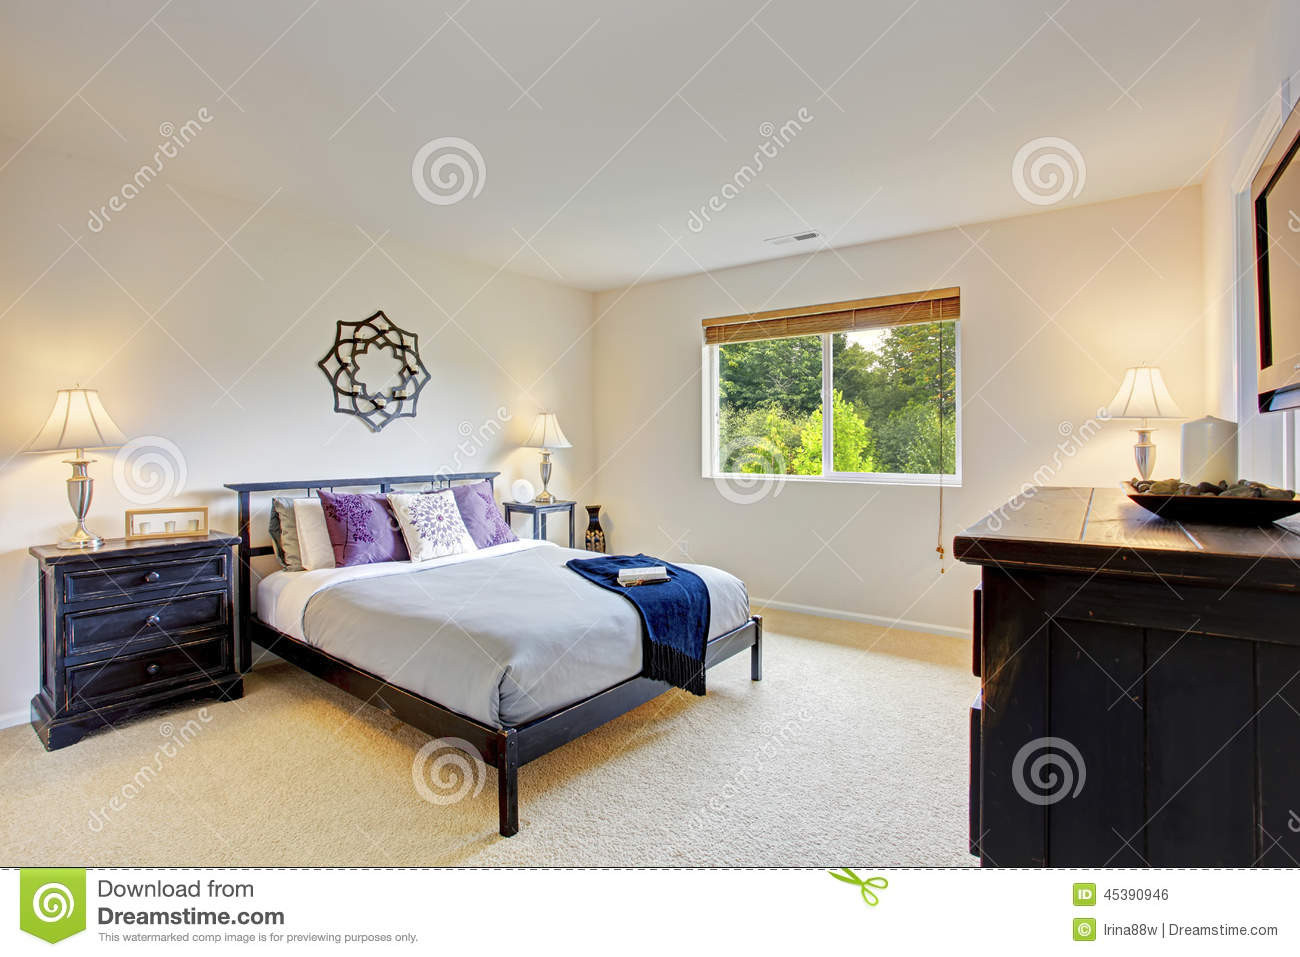 Master Bedroom Interior With Vanity Cabinet Stock Photo Image Of Idea Bright 45390946